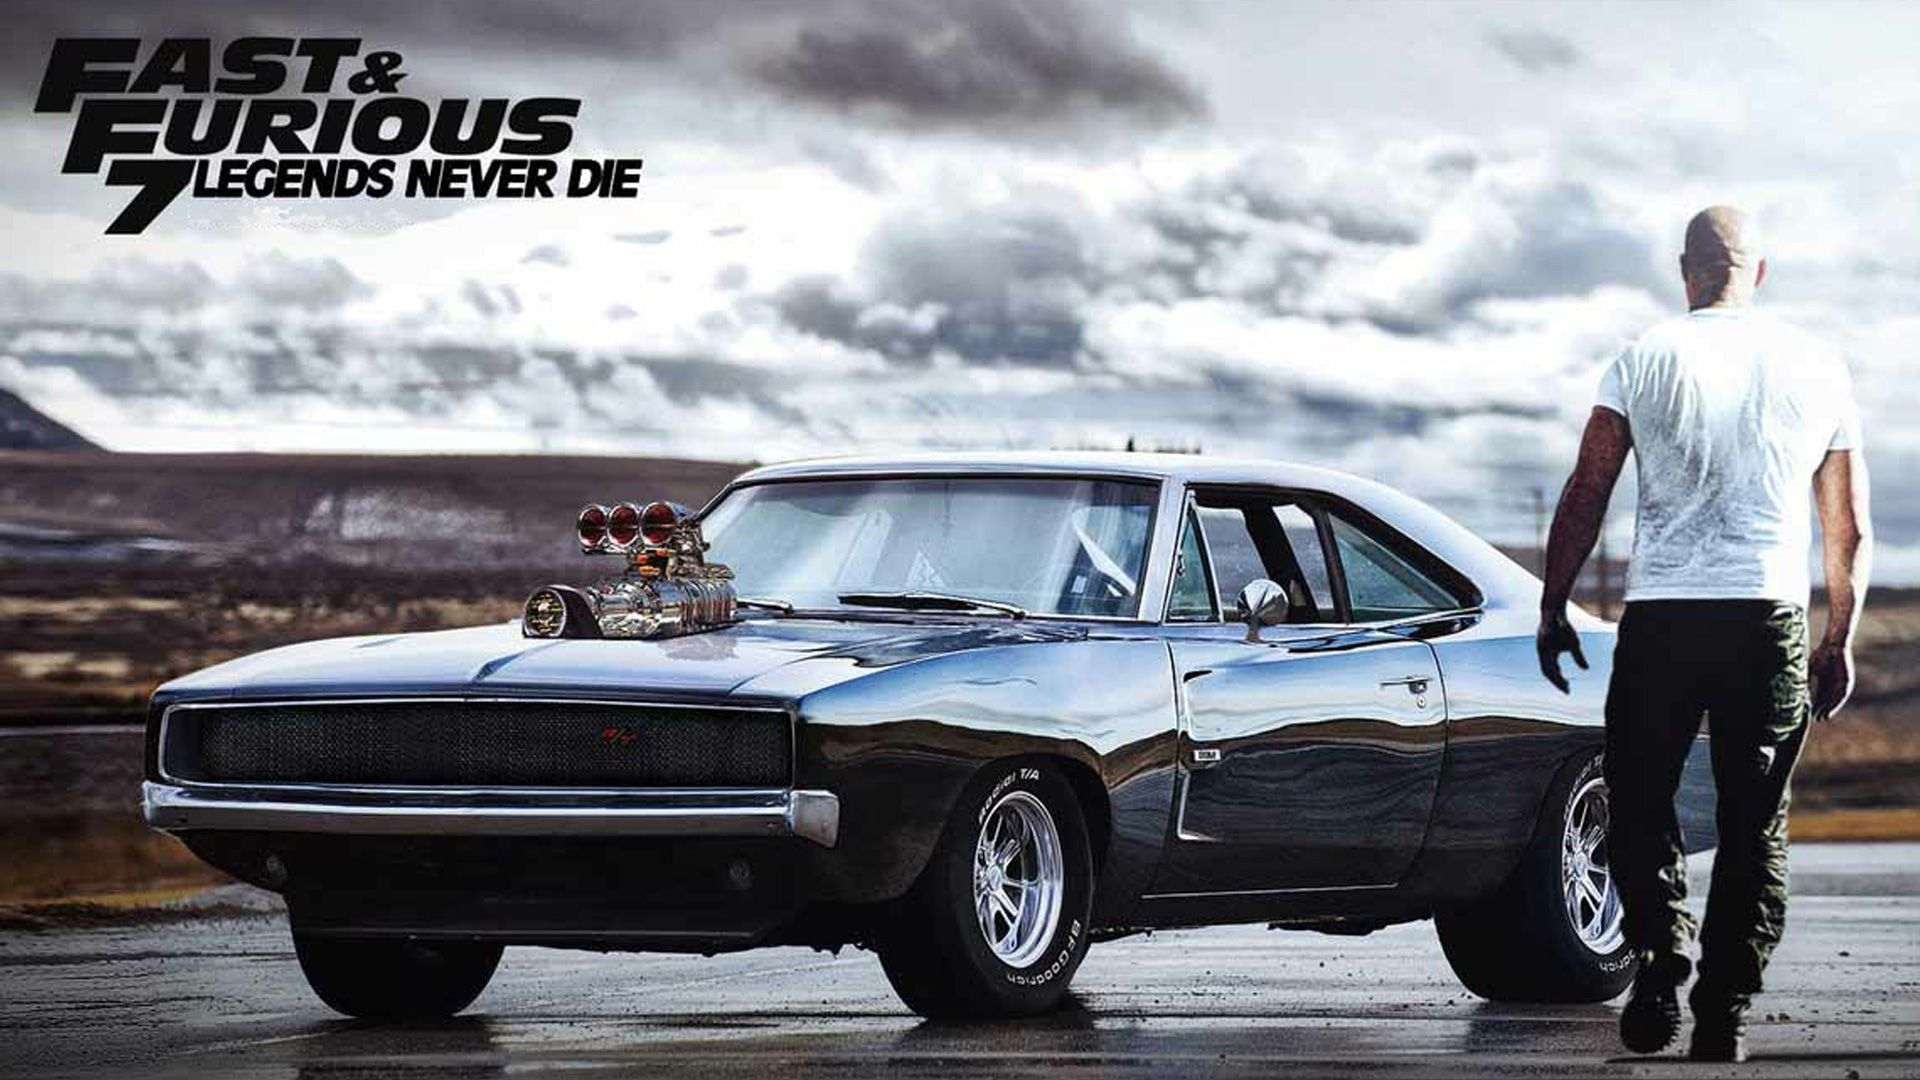 Fast And Furious Desktop Wallpapers Top Free Fast And Furious